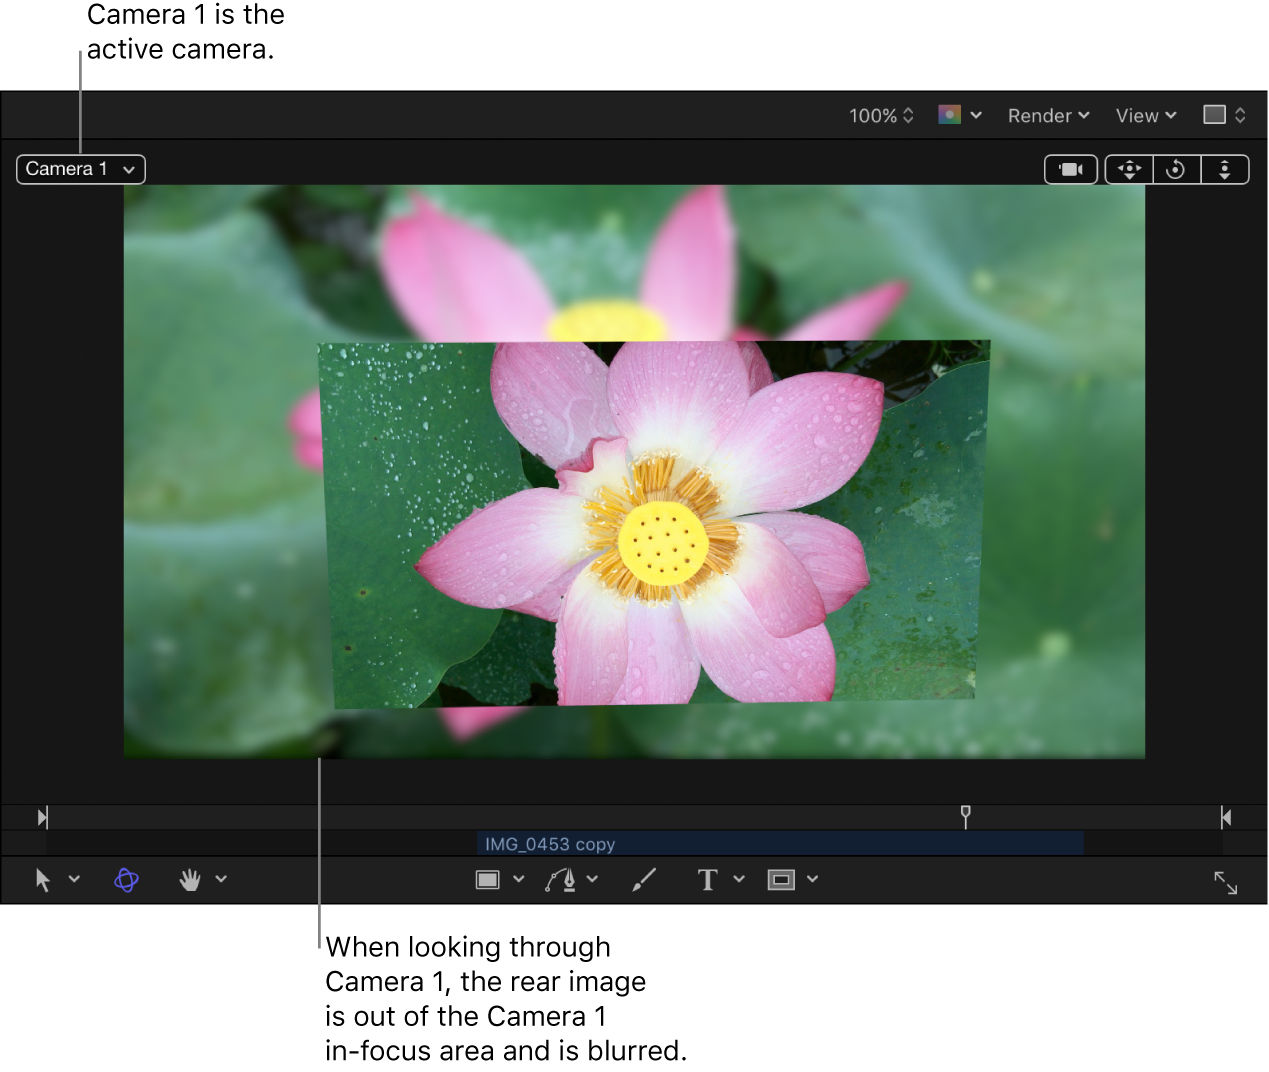 Canvas showing camera with depth-of-field effect visible